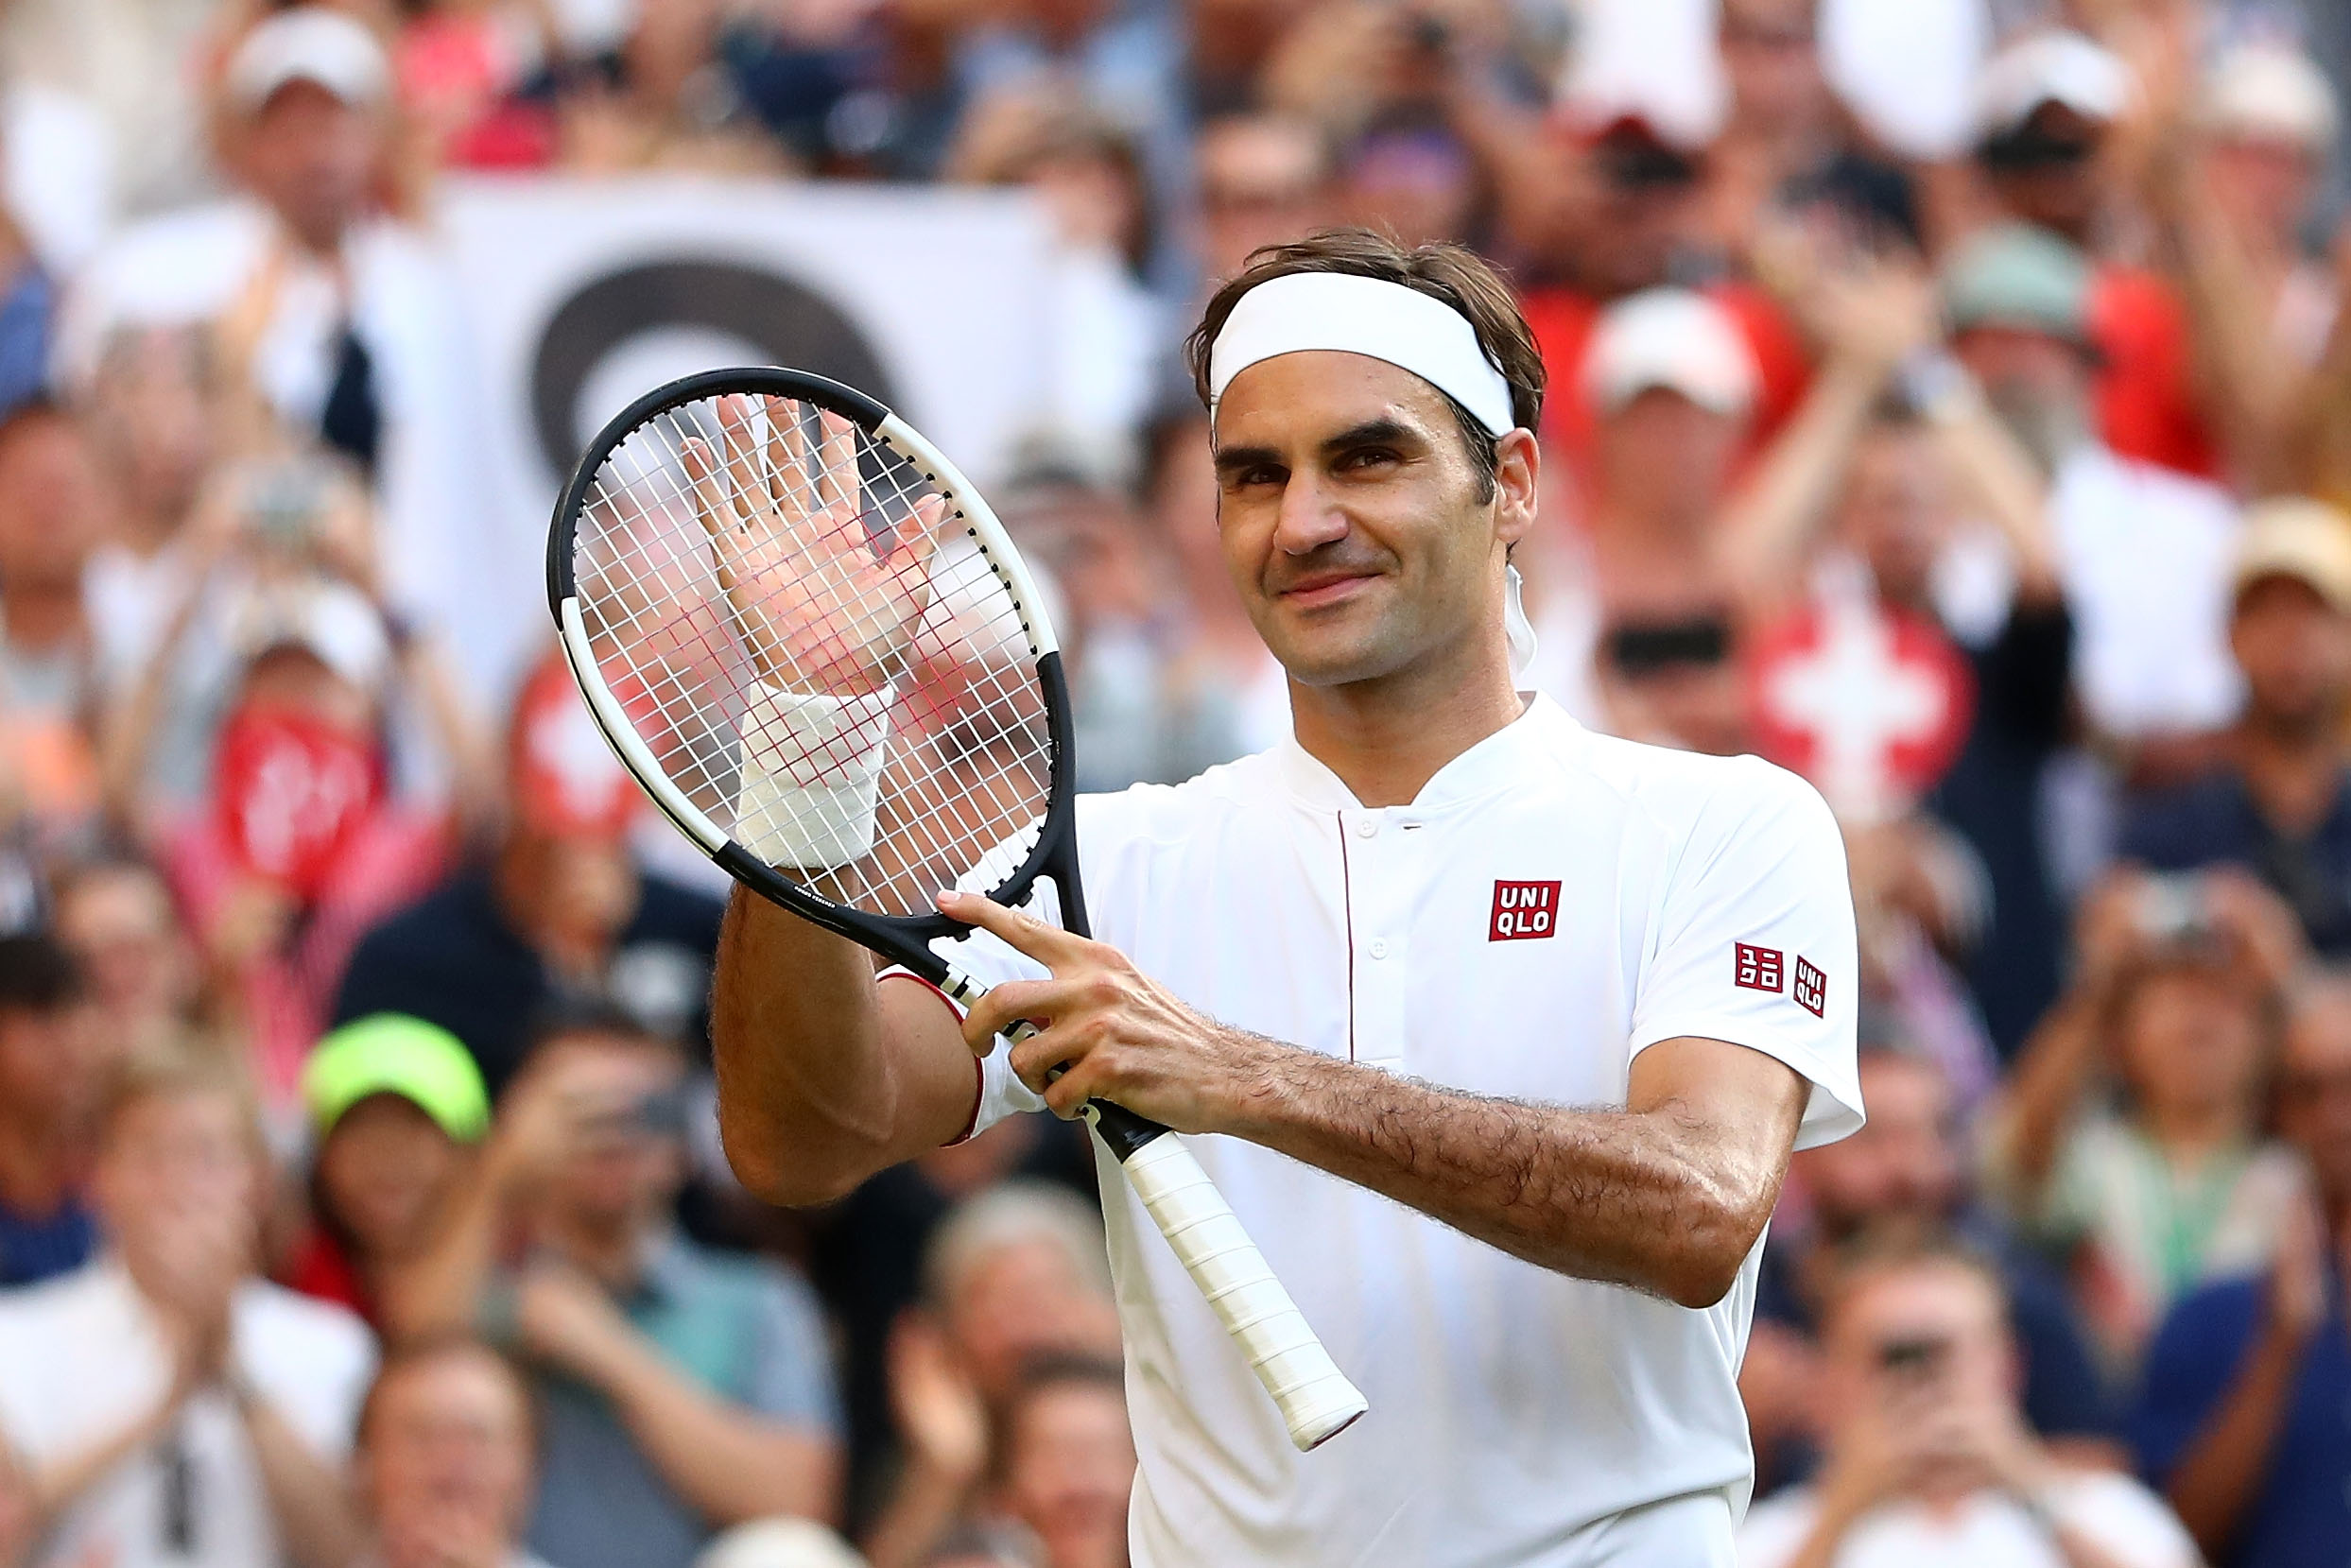 Roger Federer of Switzerland (Source: Getty Images)